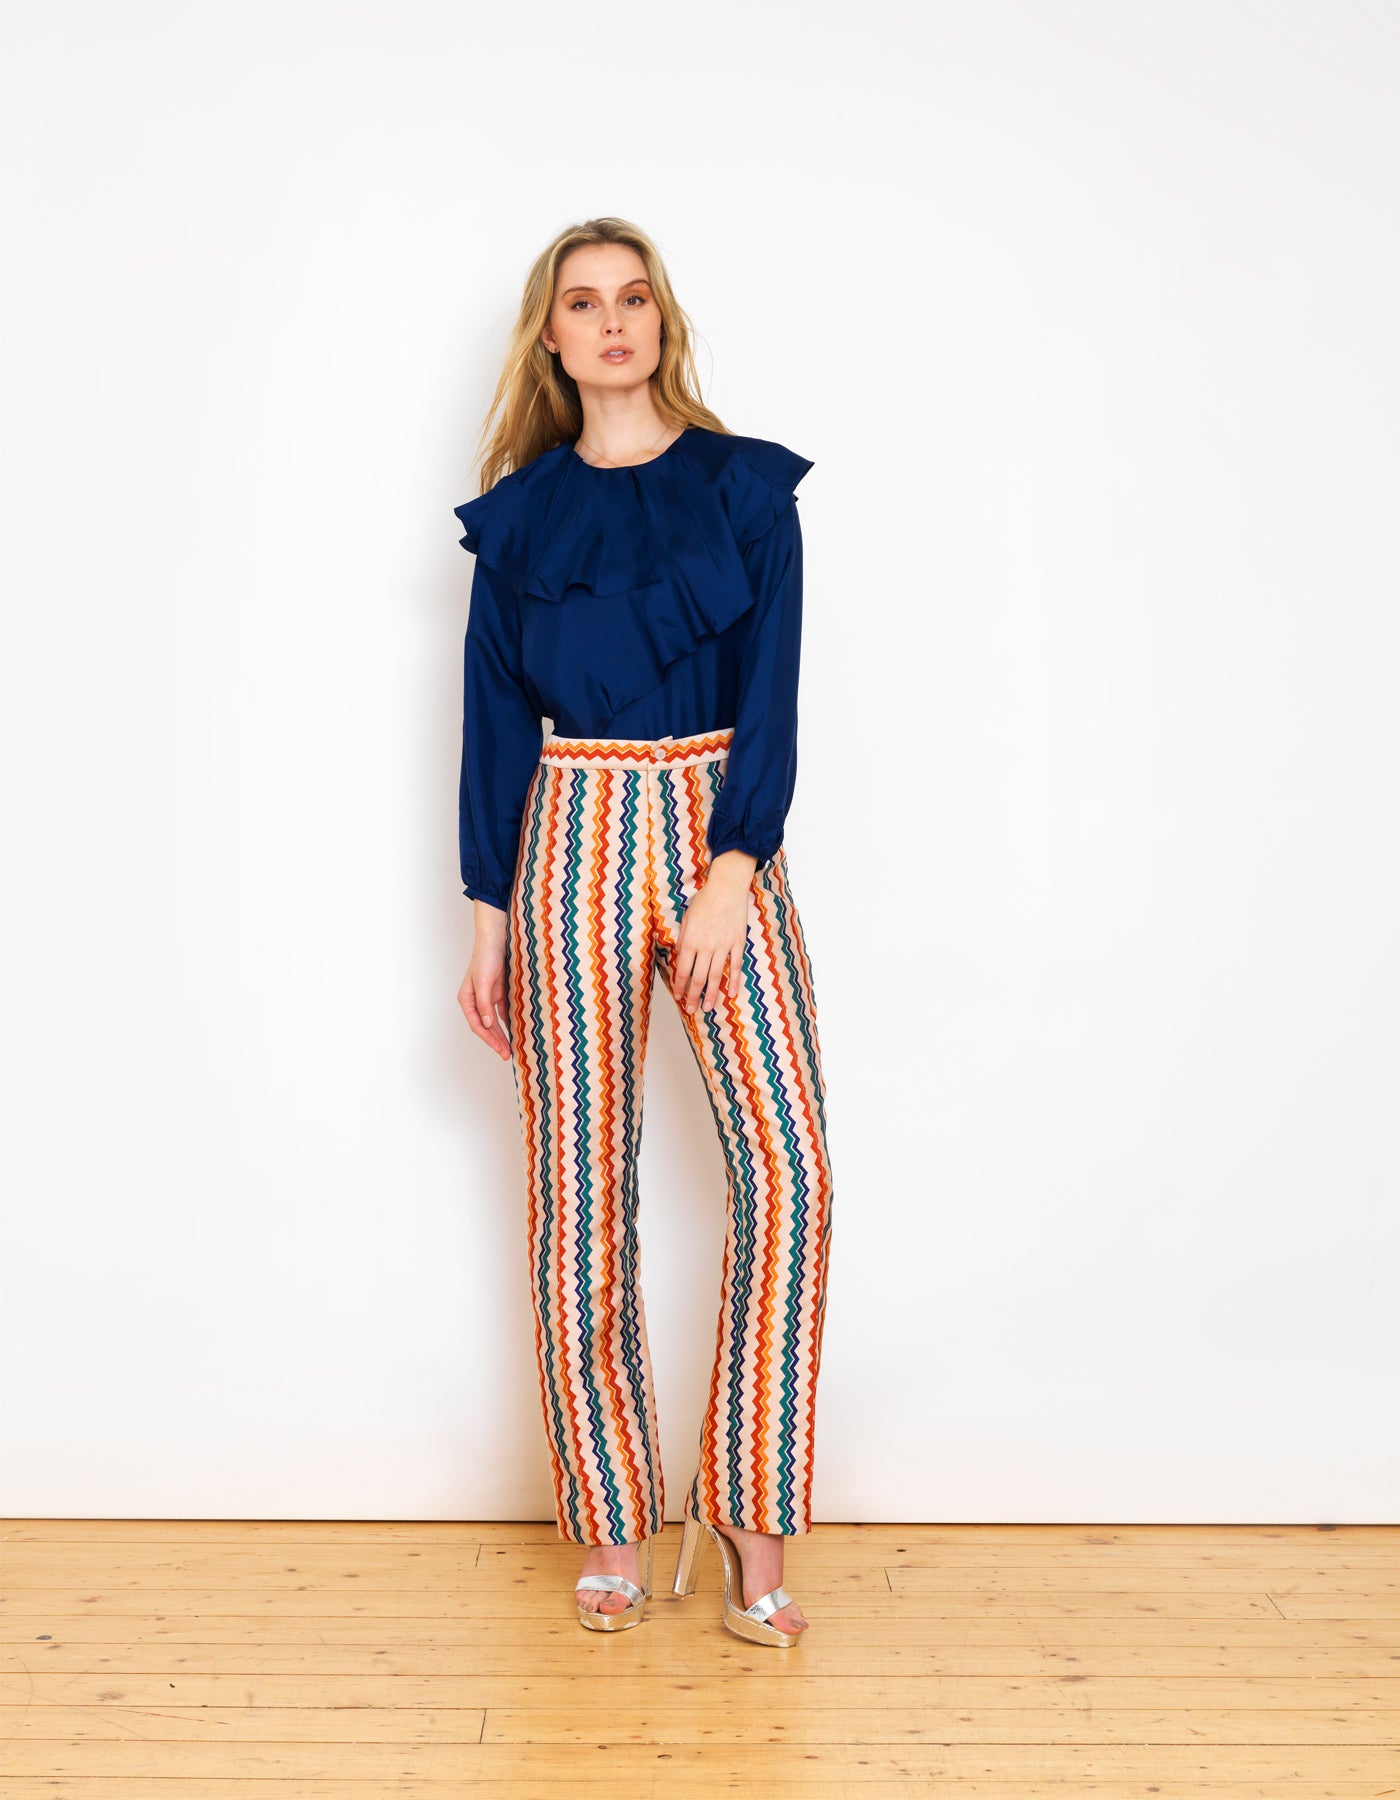 Hetty Metallic Rainbow Zig Zag Jacquard Trousers